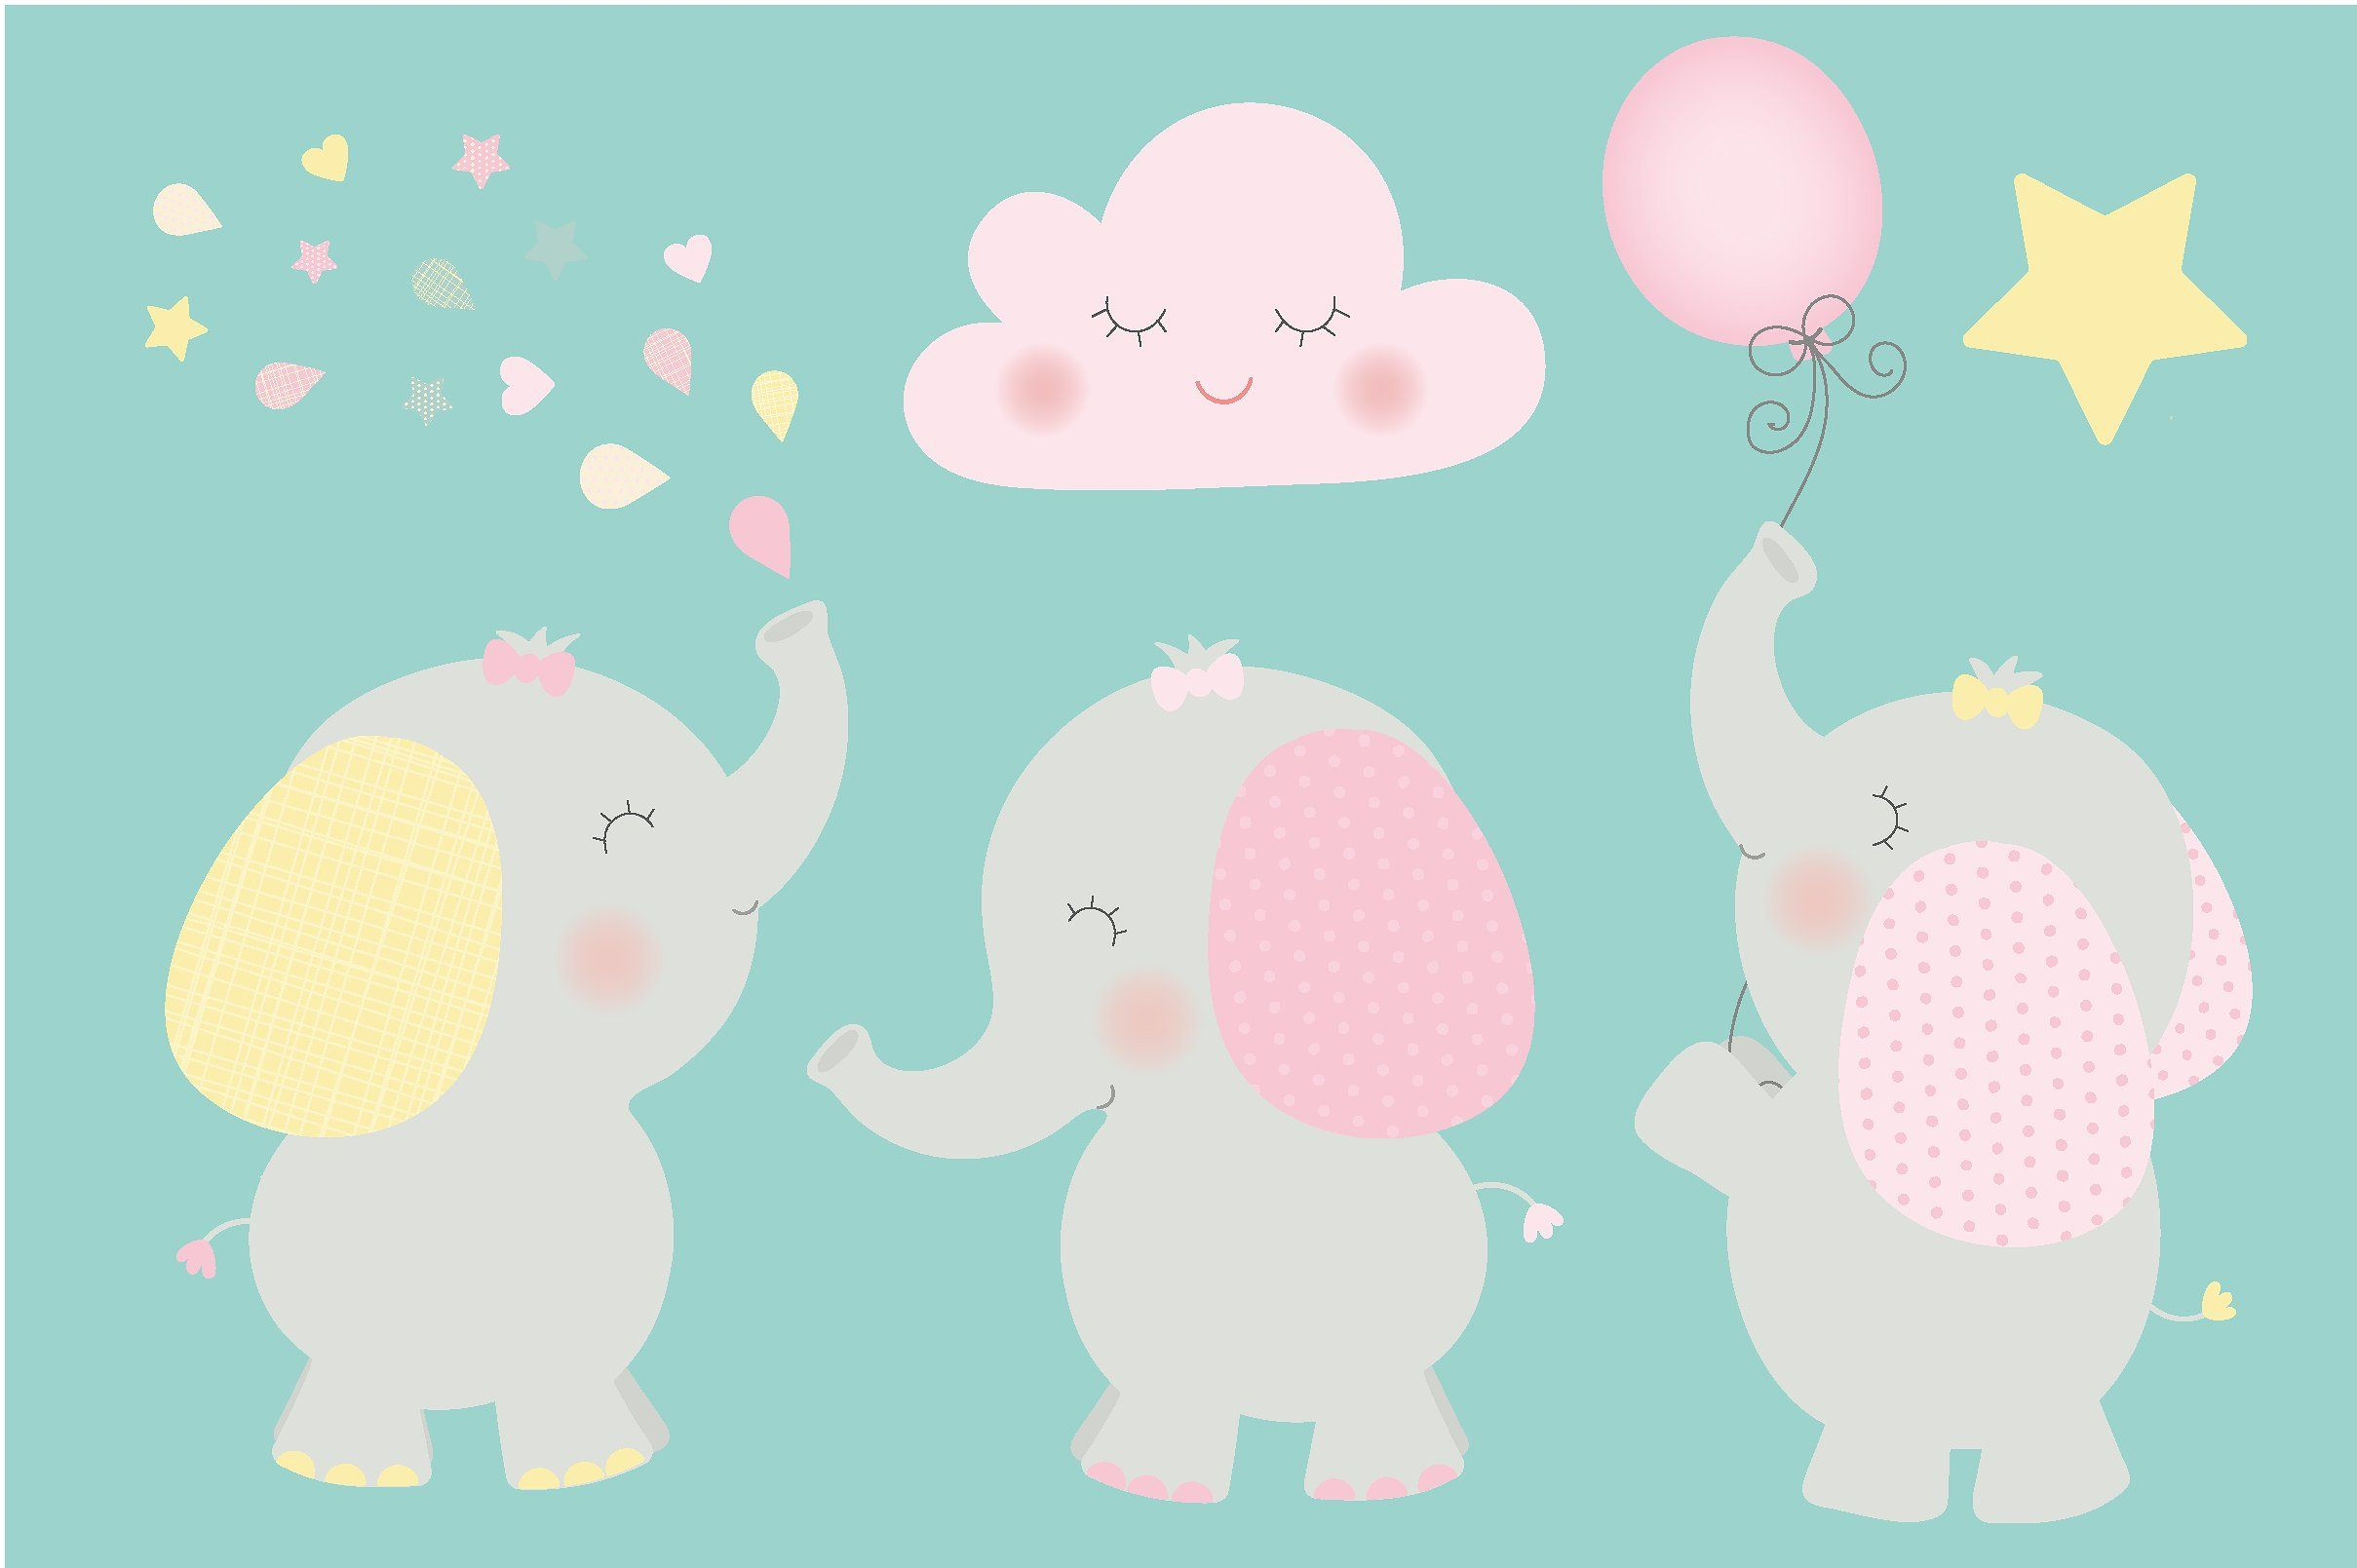 Baby elephant party clipart clipart royalty free stock Baby elephant clipart by Poppymoondesign on @creativemarket   DIY ... clipart royalty free stock